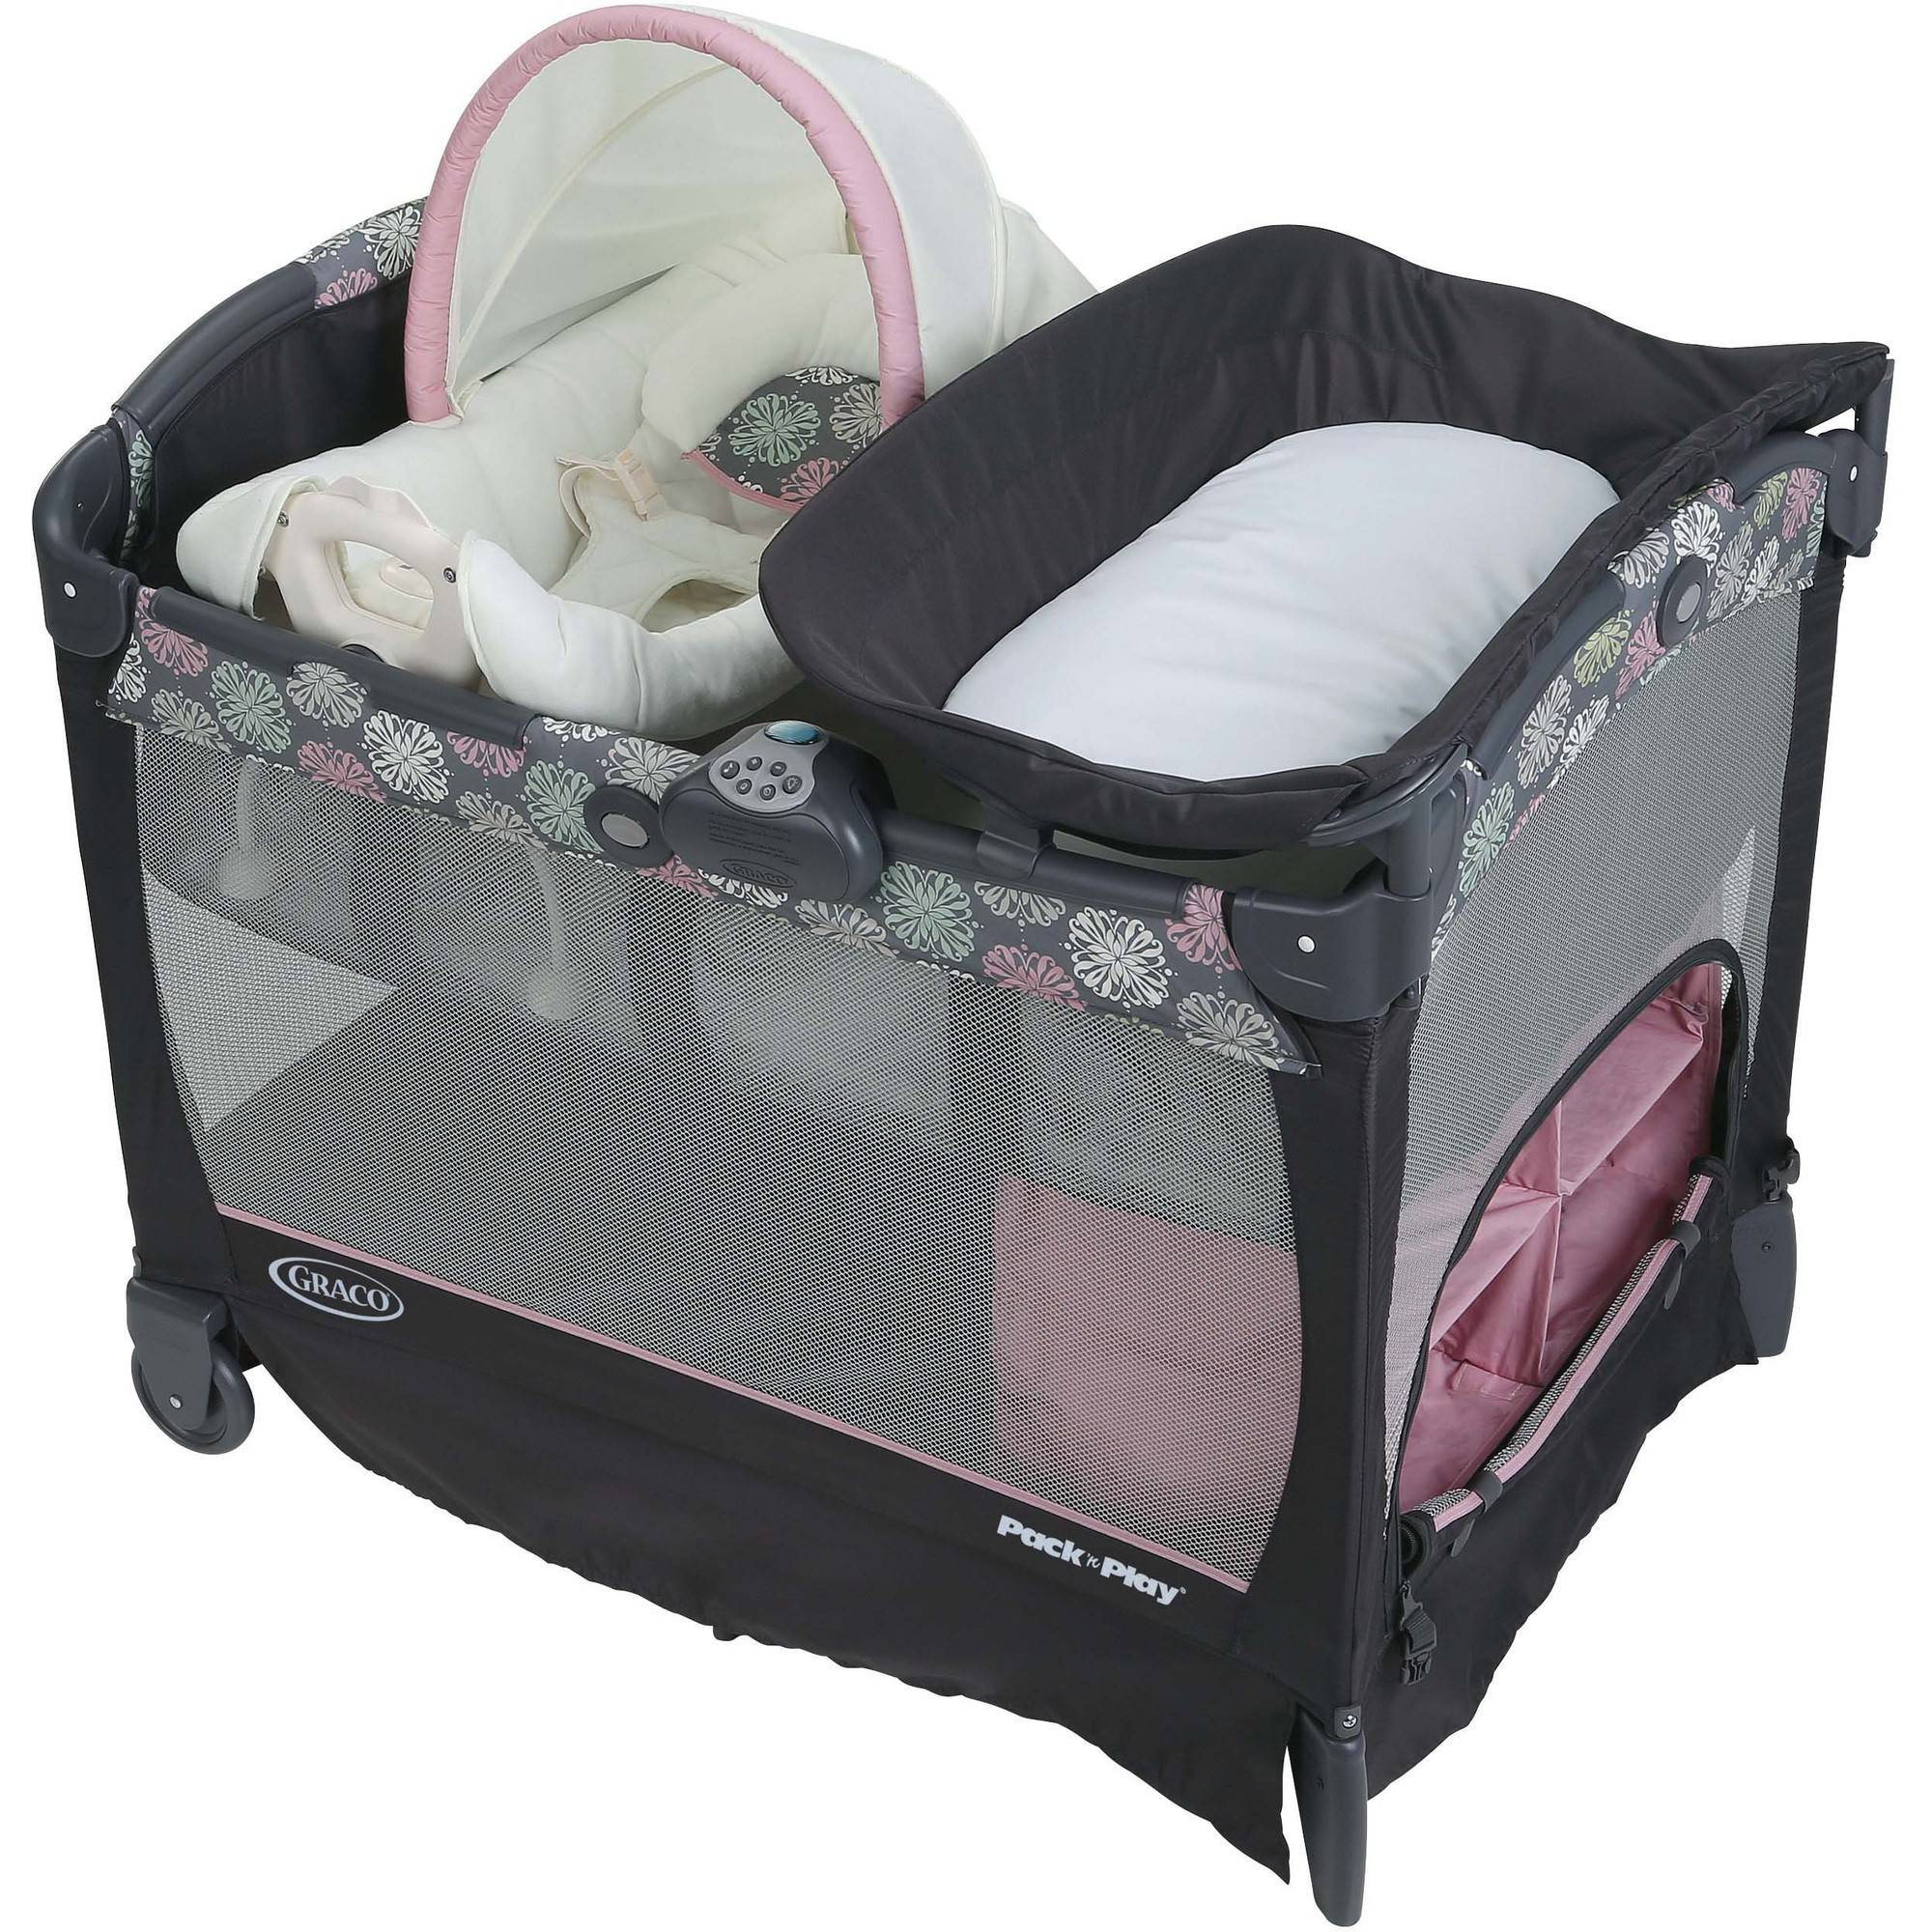 Graco Pack 'N Play Playard with Cuddle Cove Baby Seat, Addison